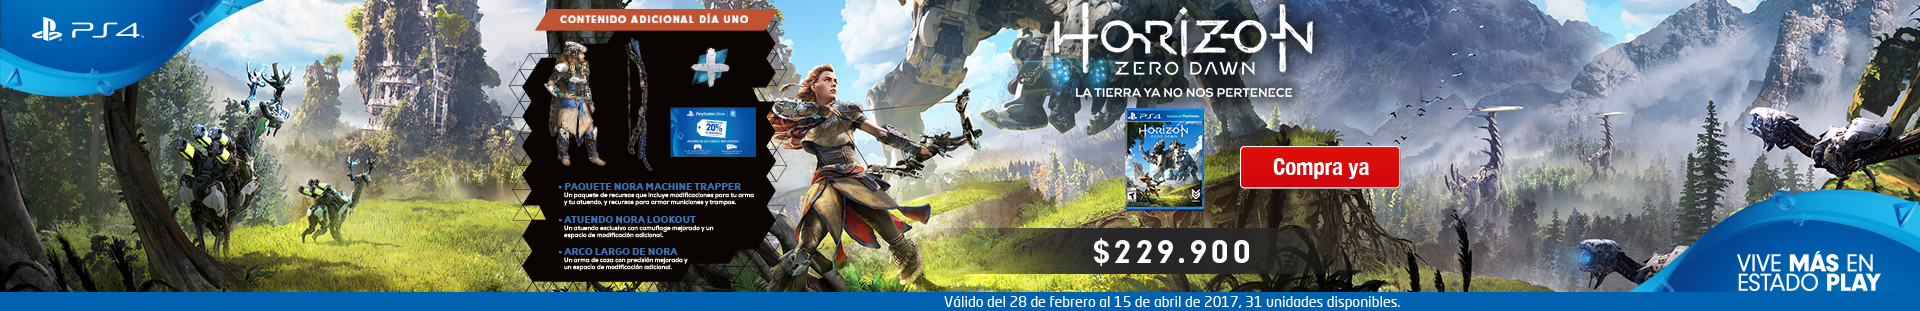 banner Horizon Zero Dawn